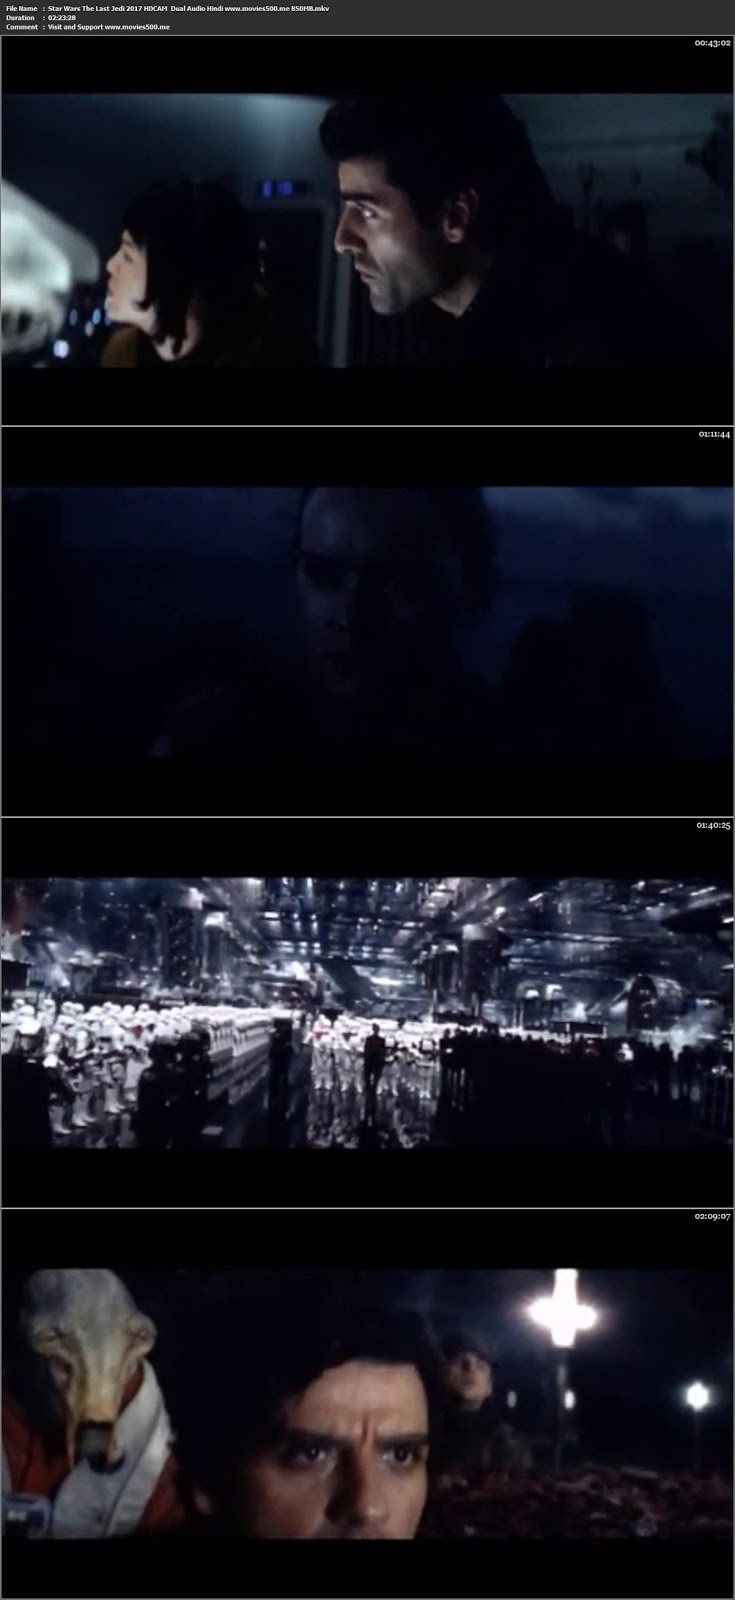 Star Wars The Last Jedi 2017 Dual Audio Hindi HDCAM 720p at freedomcopy.com